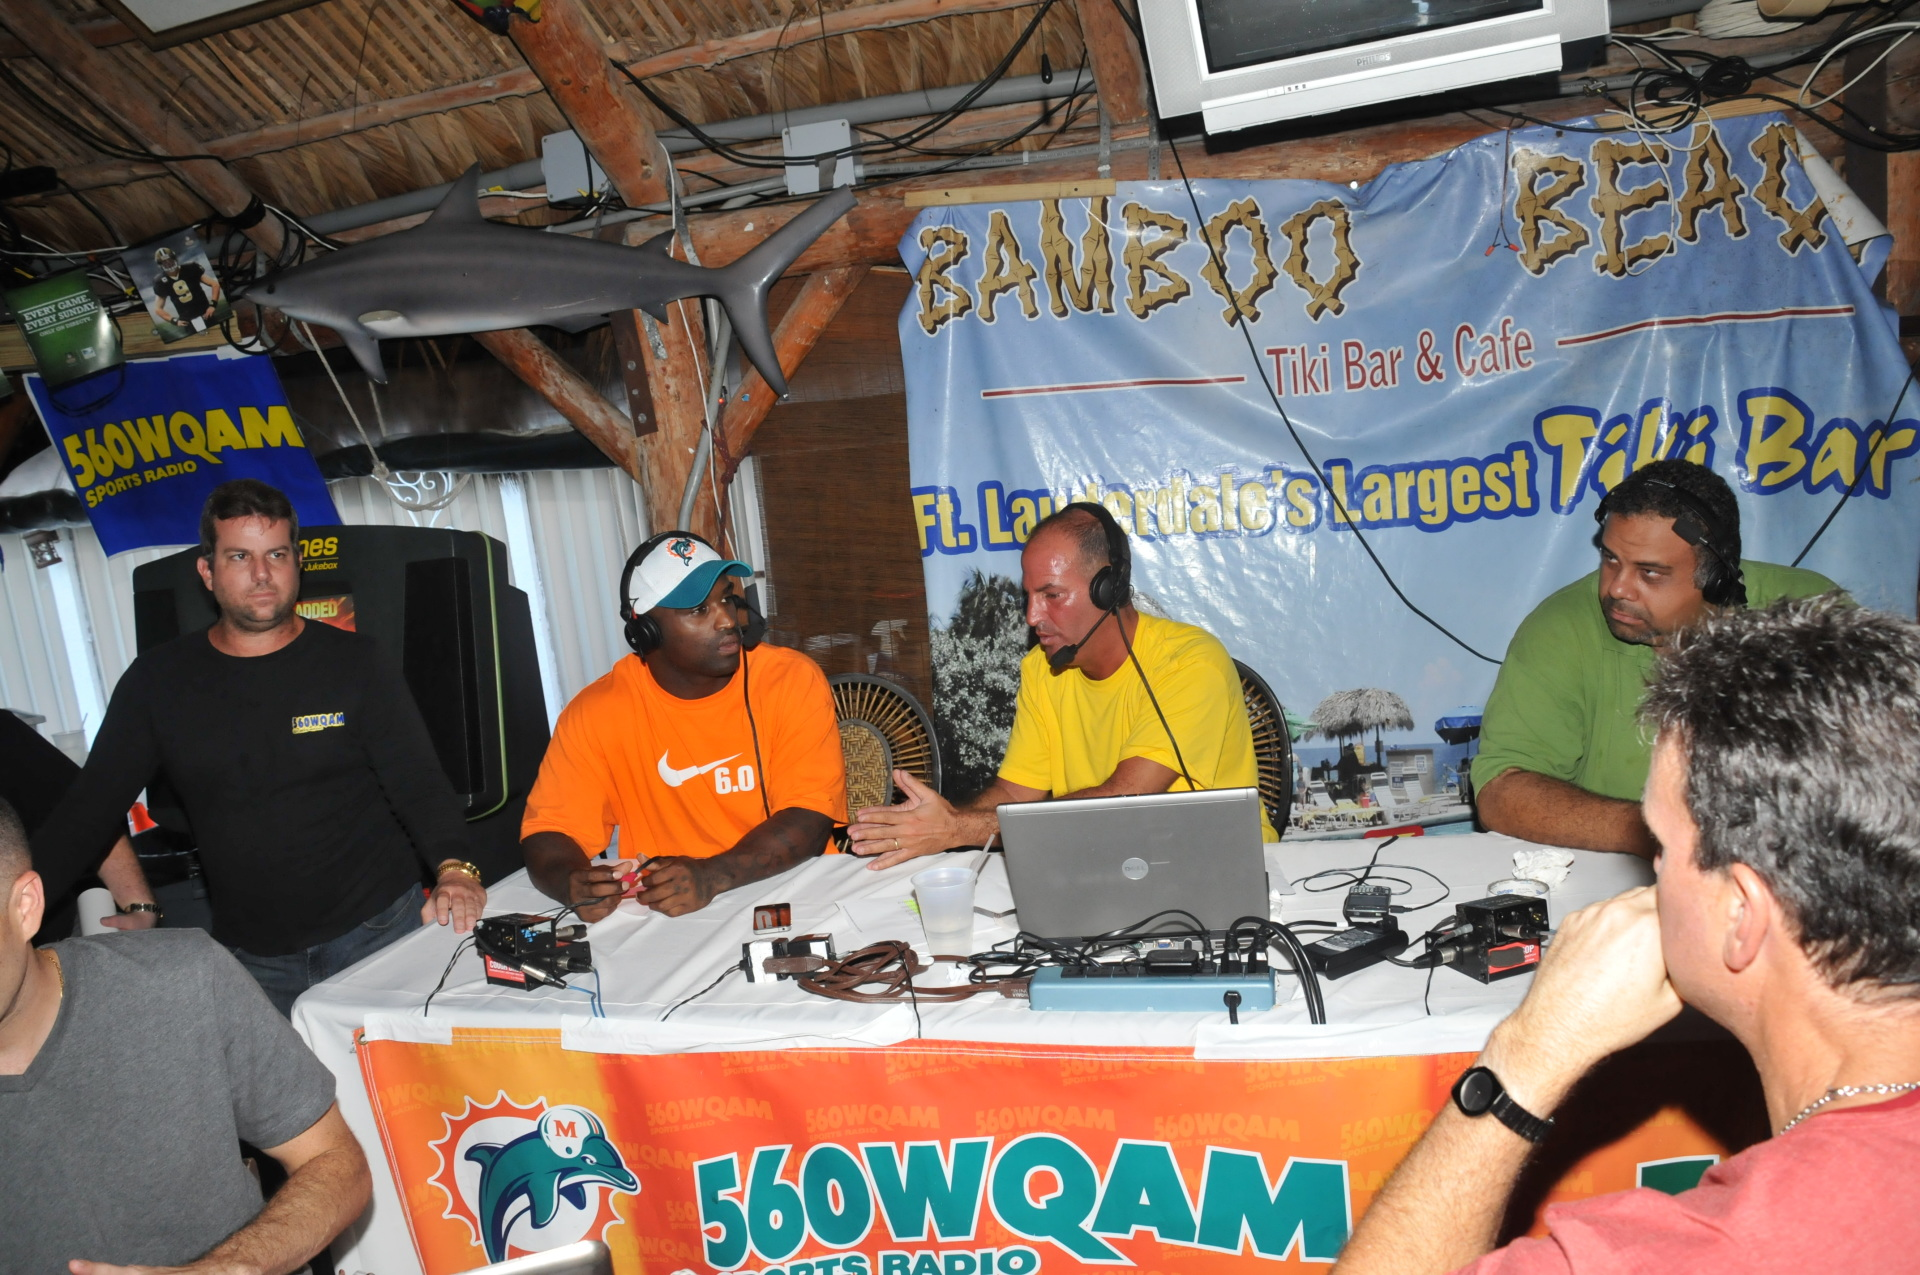 football, ricky williams, miami, dolphins, photo, radio, new orleans, fort lauderdale, show